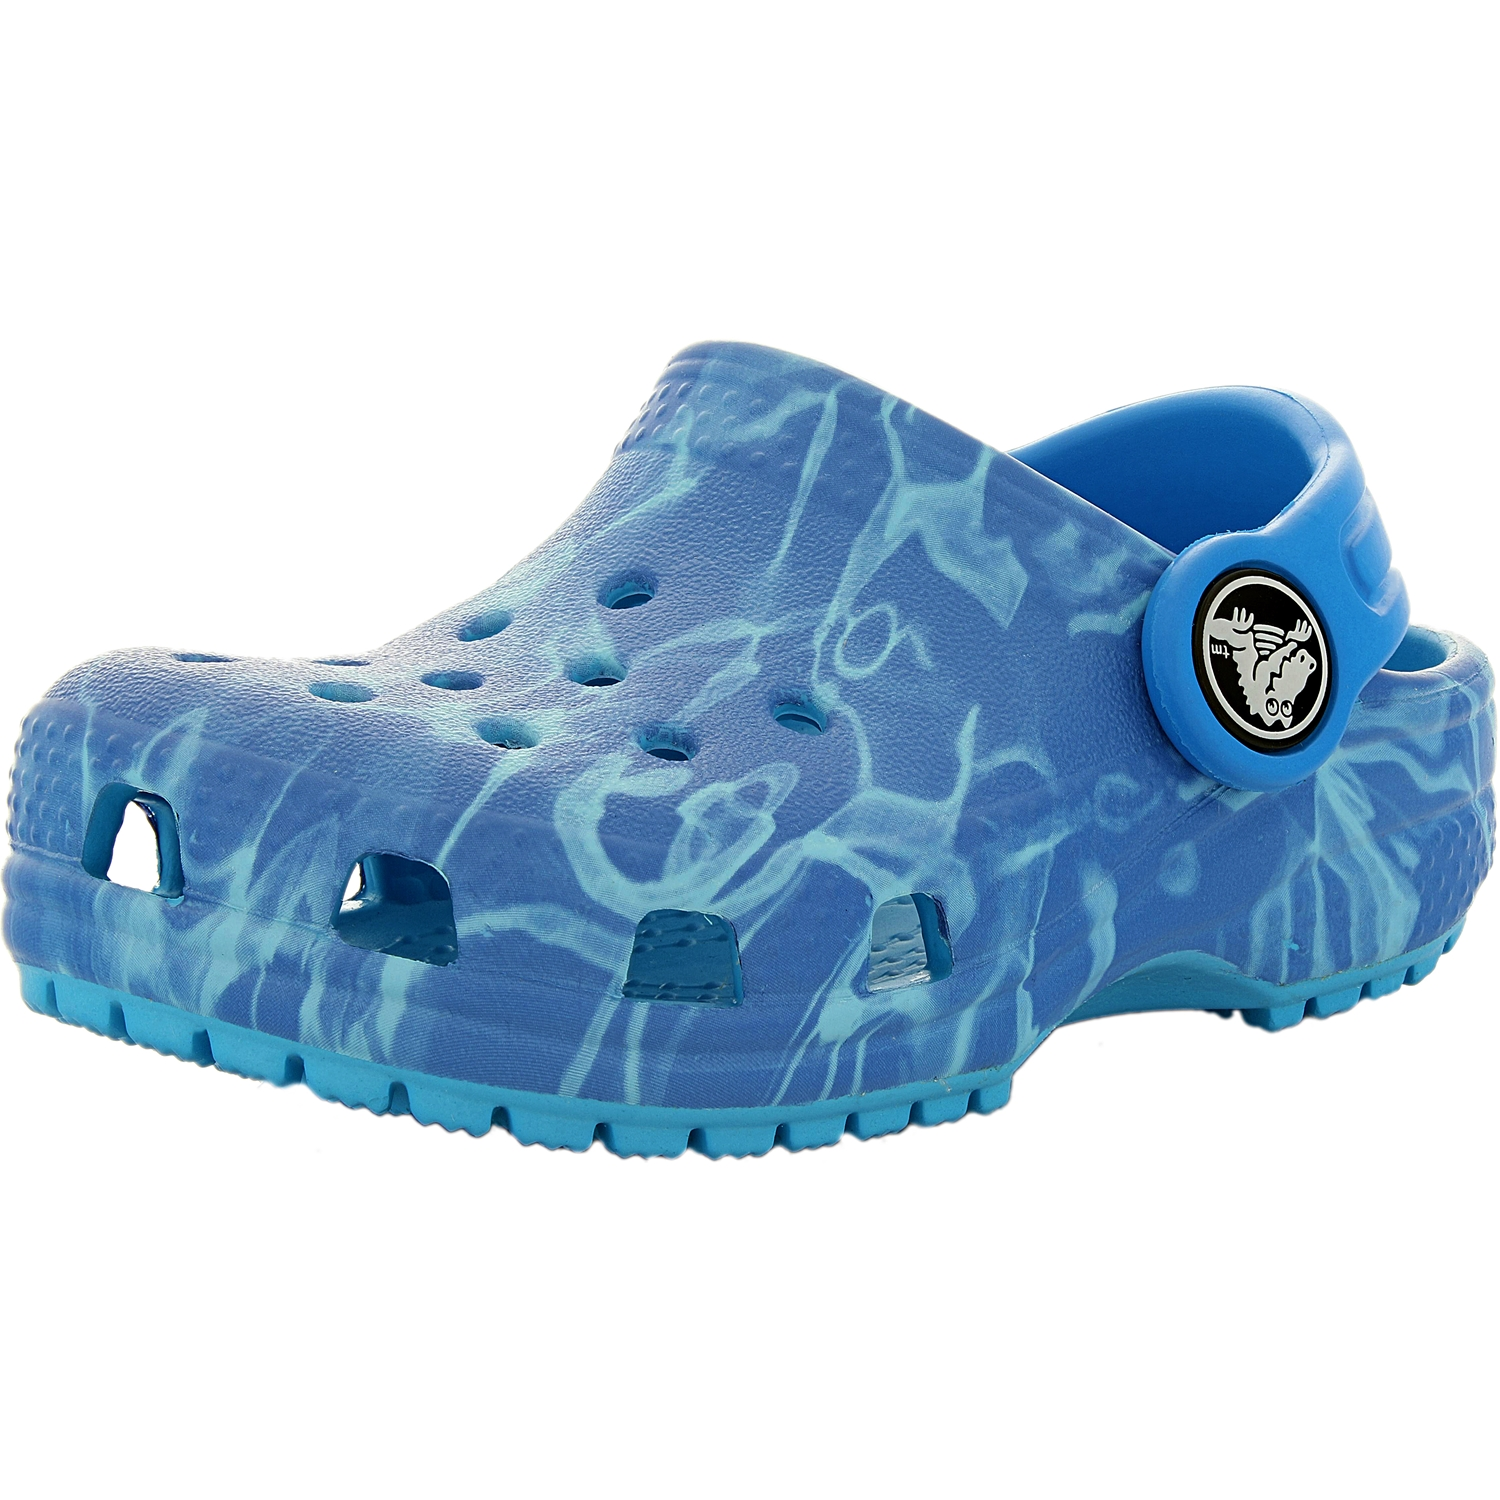 Crocs Boy's Classic Graphic Clog B Ankle-High Synthetic Flat Shoe by Crocs